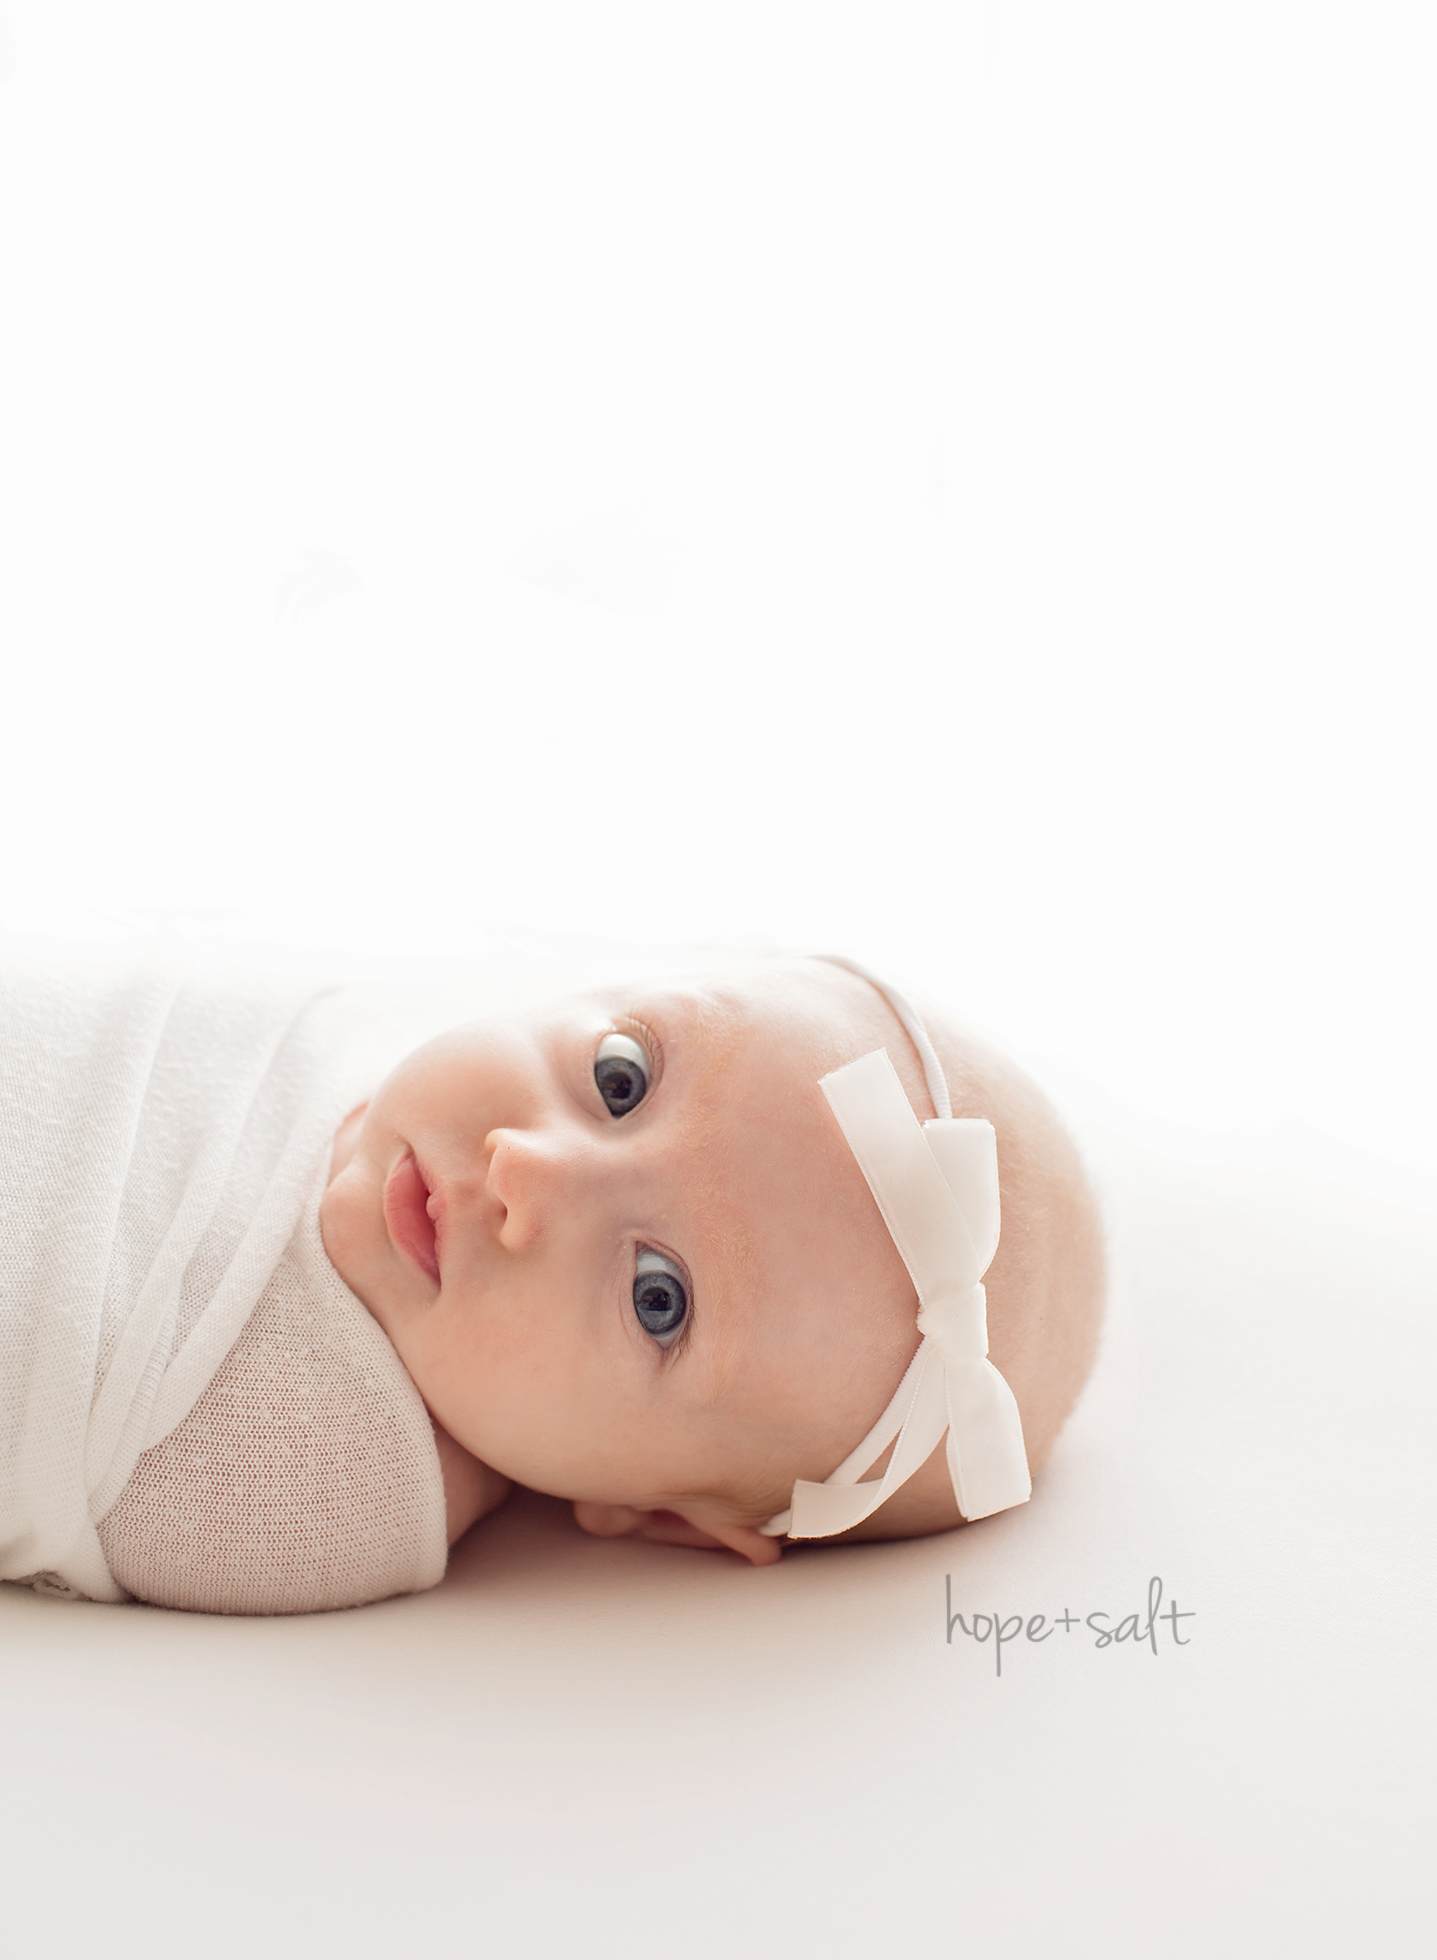 A studio session for 3-month old girl Emma Burlington Ontario baby photographer Hope + Salt